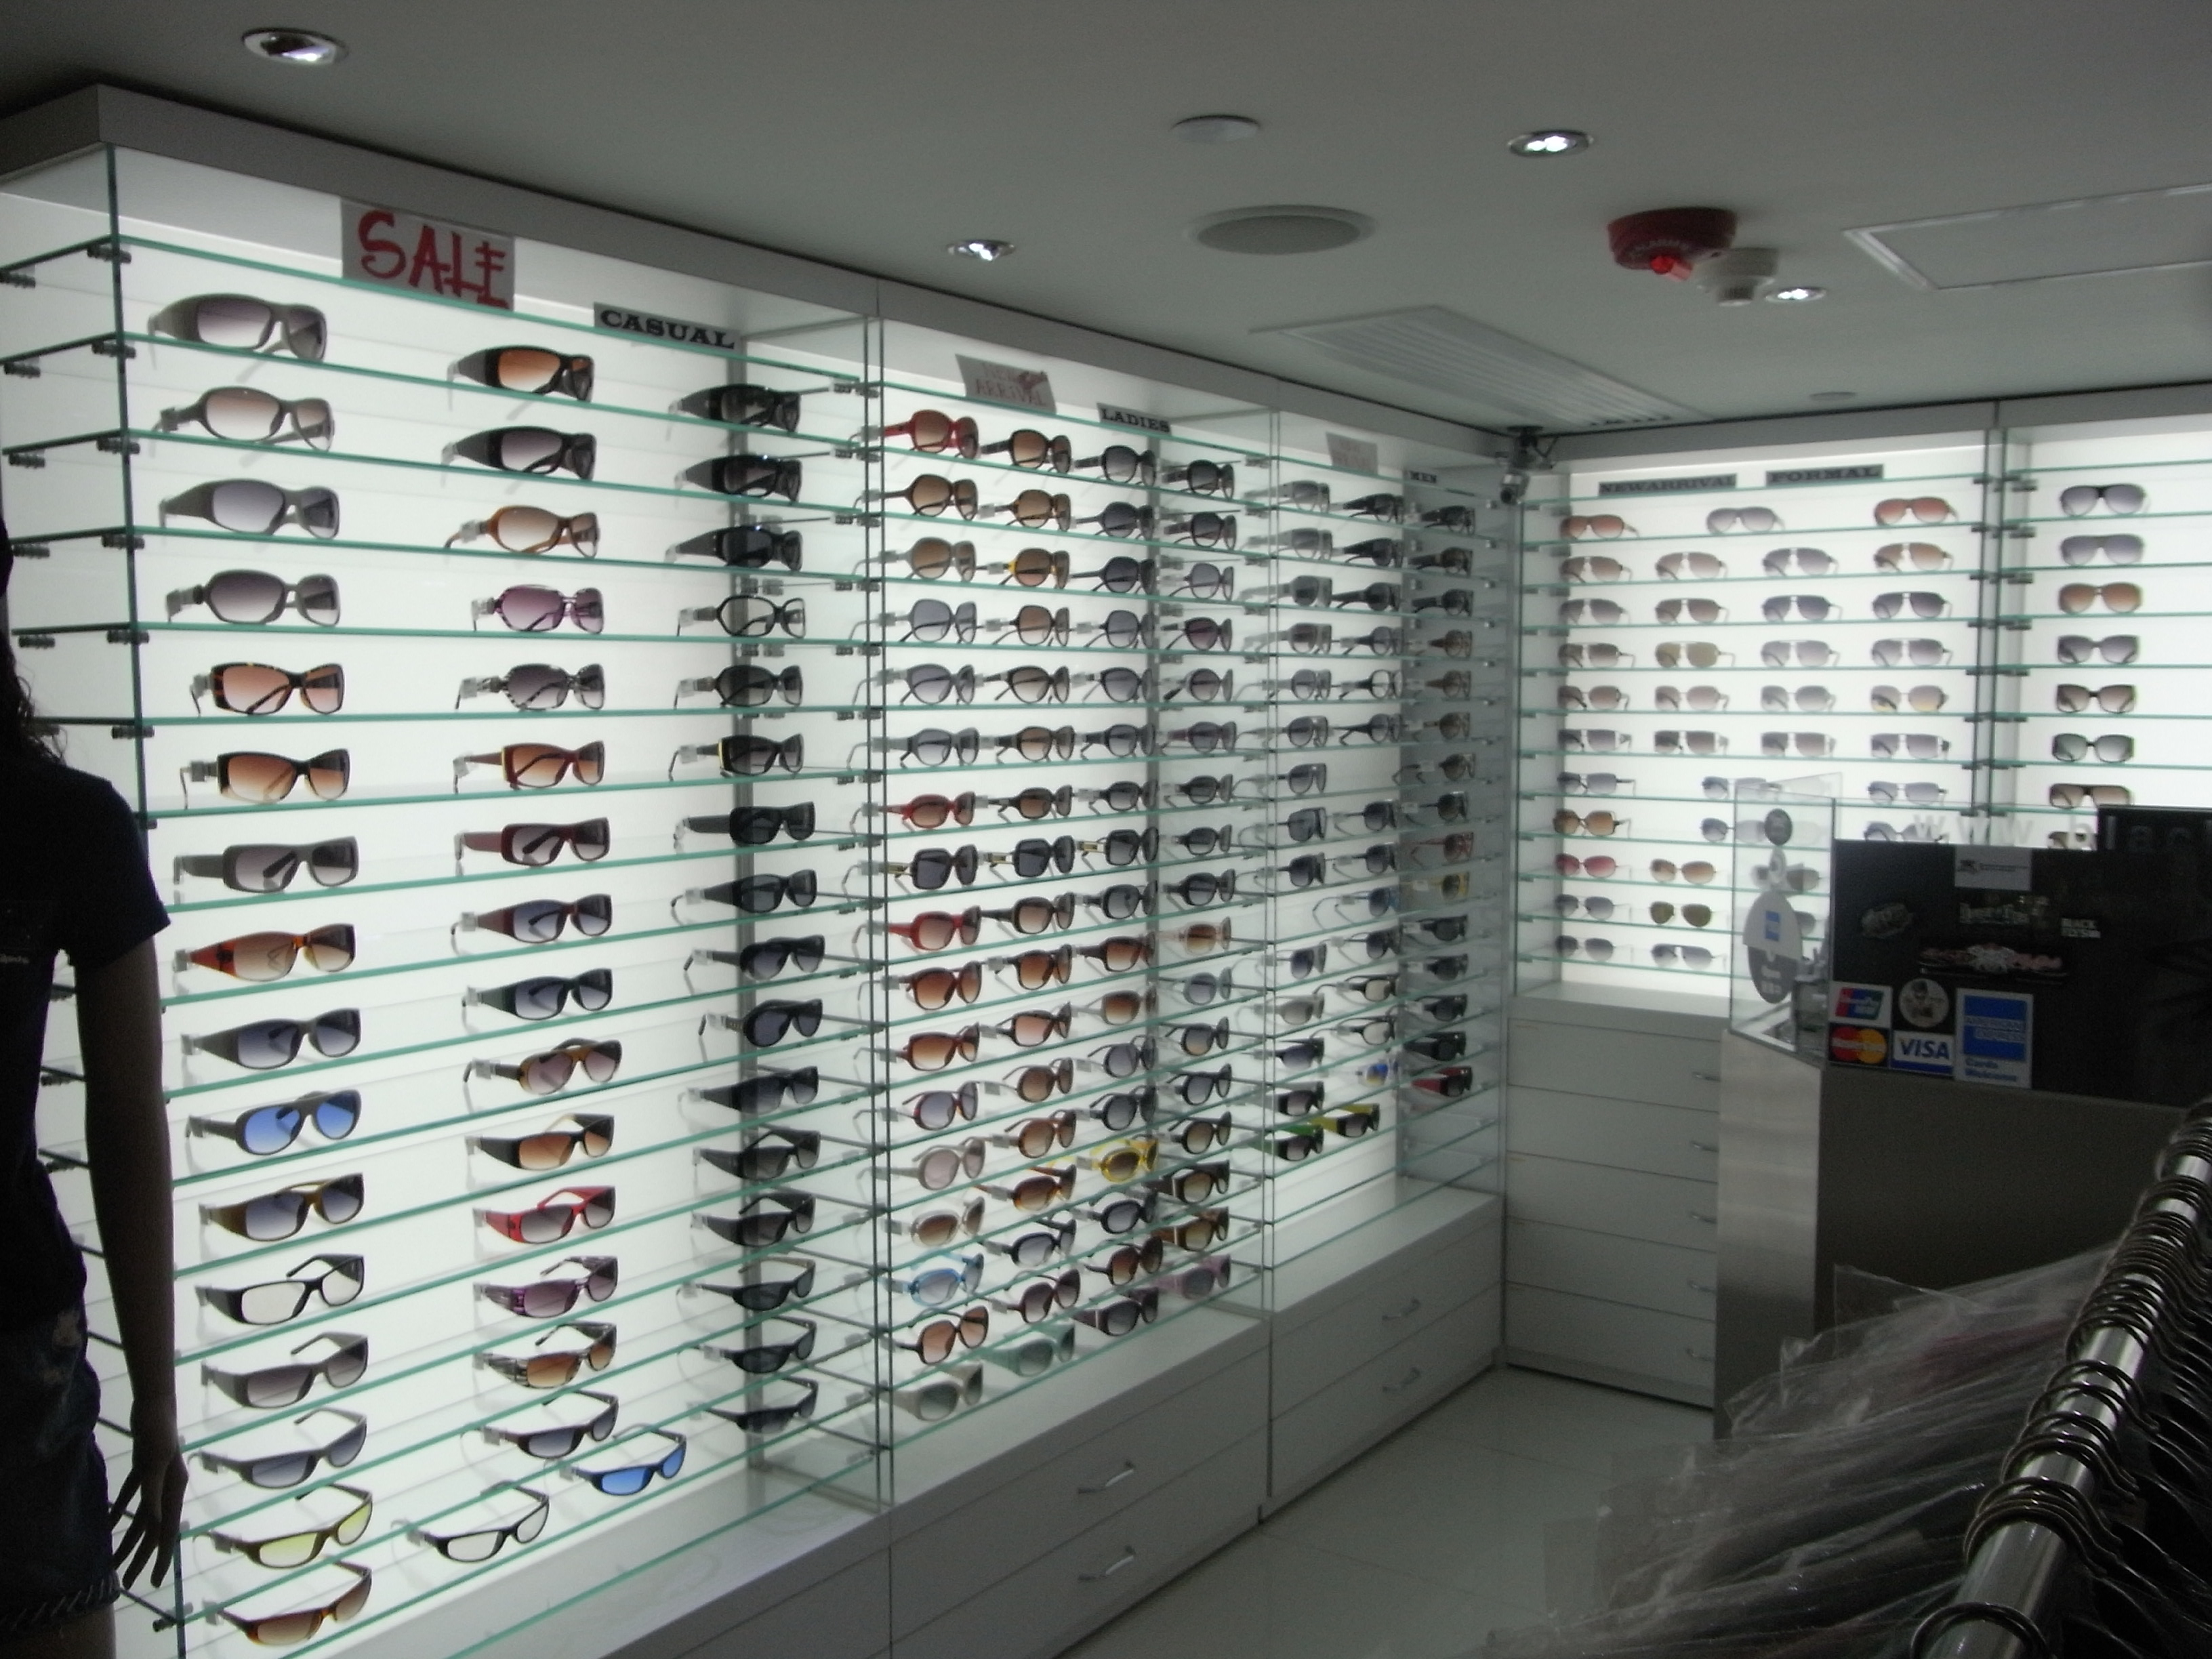 File:HK TST Chung King 活方商場 Woodhouse Optician Shop Interior Display On Sale